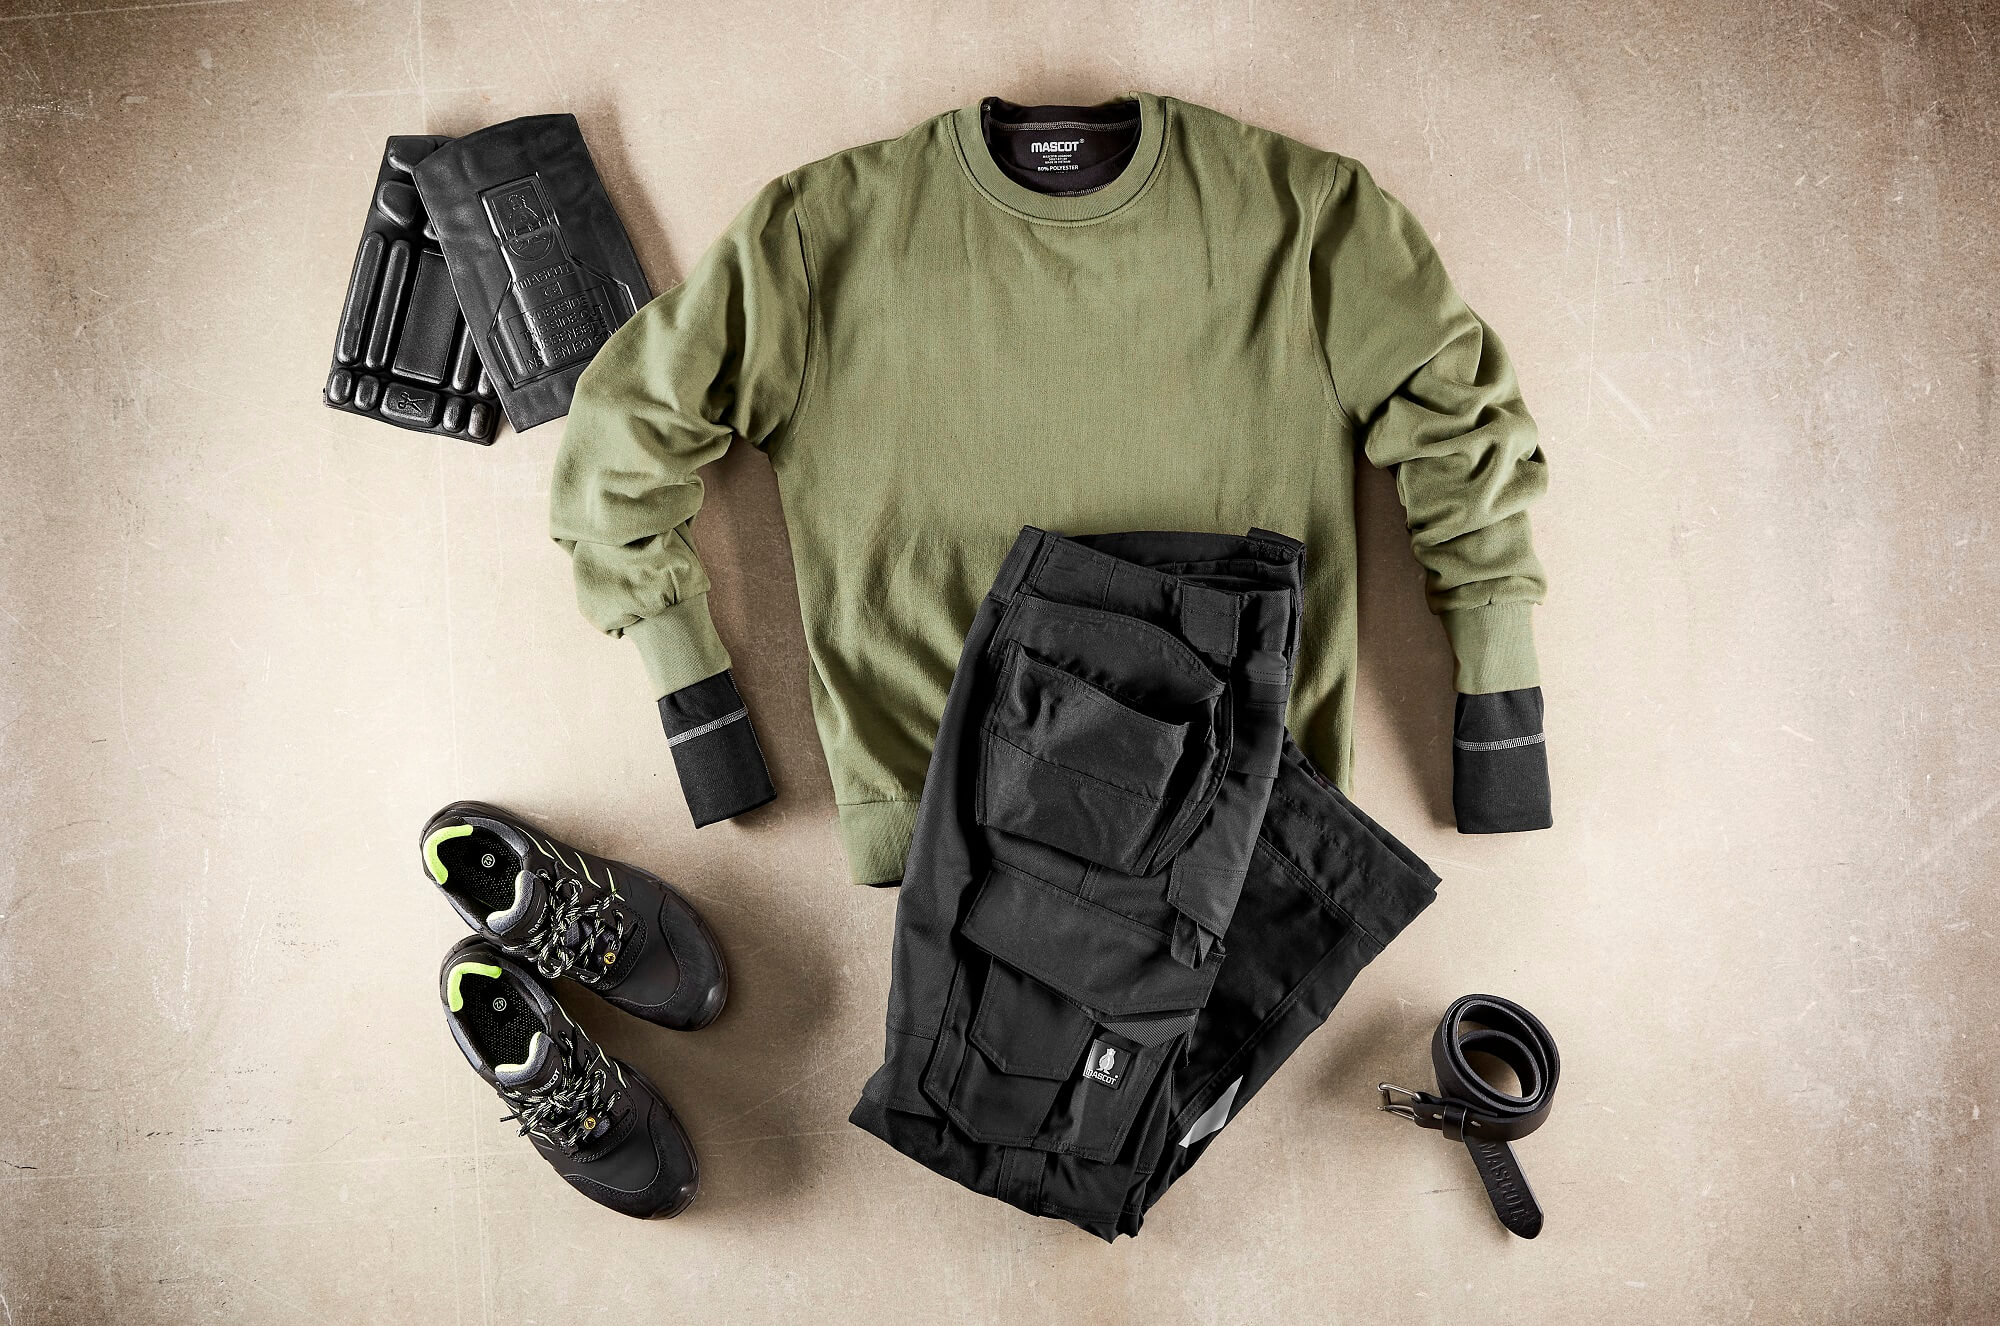 Sweatshirt, Work Trousers, Kneepads & Safety Shoe - Olive green & Black